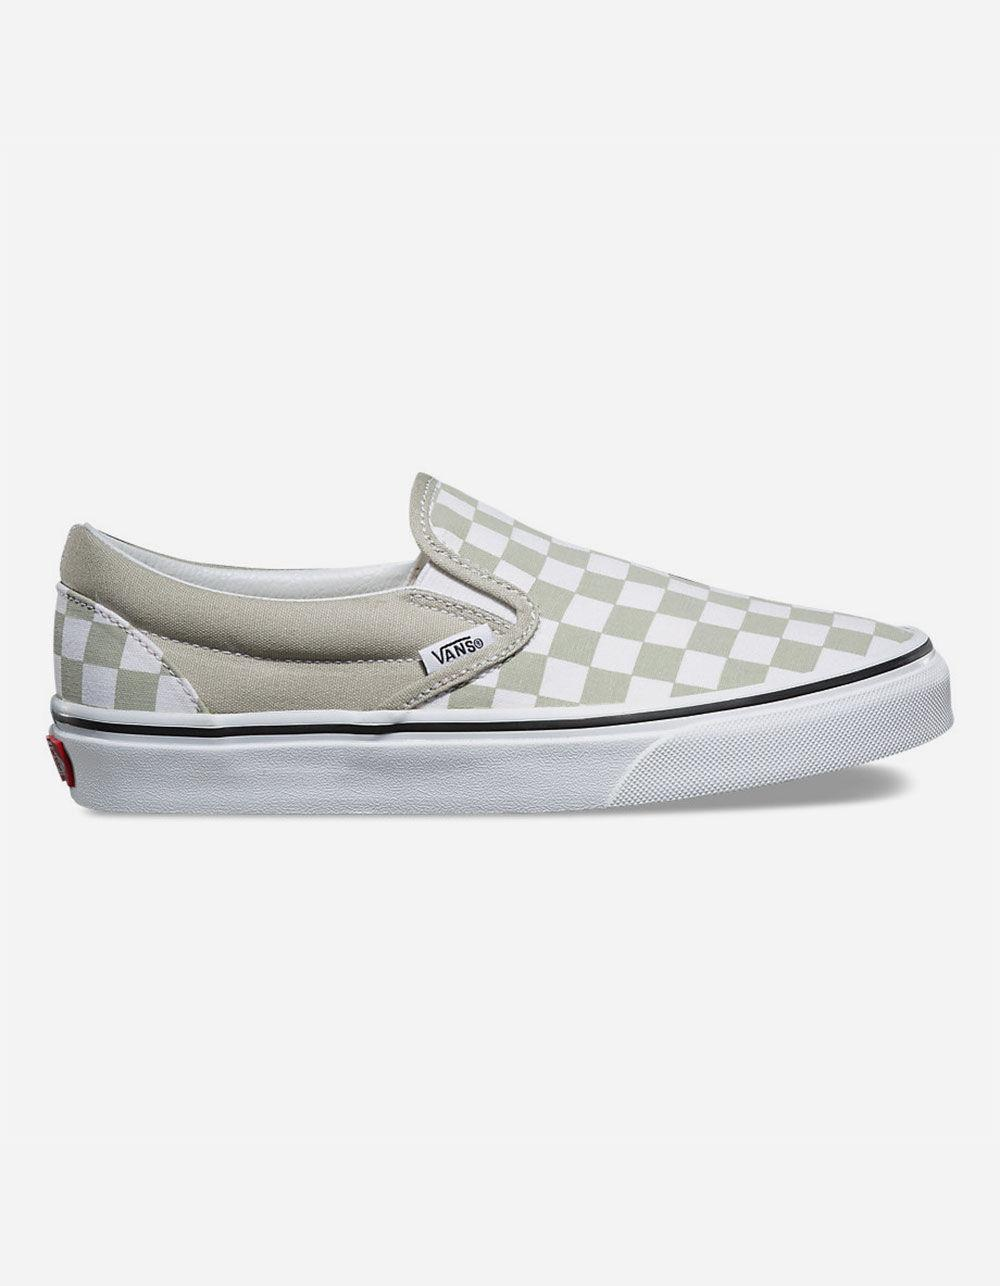 72df937403a5 Lyst - Vans Checkerboard Classic Slip-on Desert Sage Womens Shoes